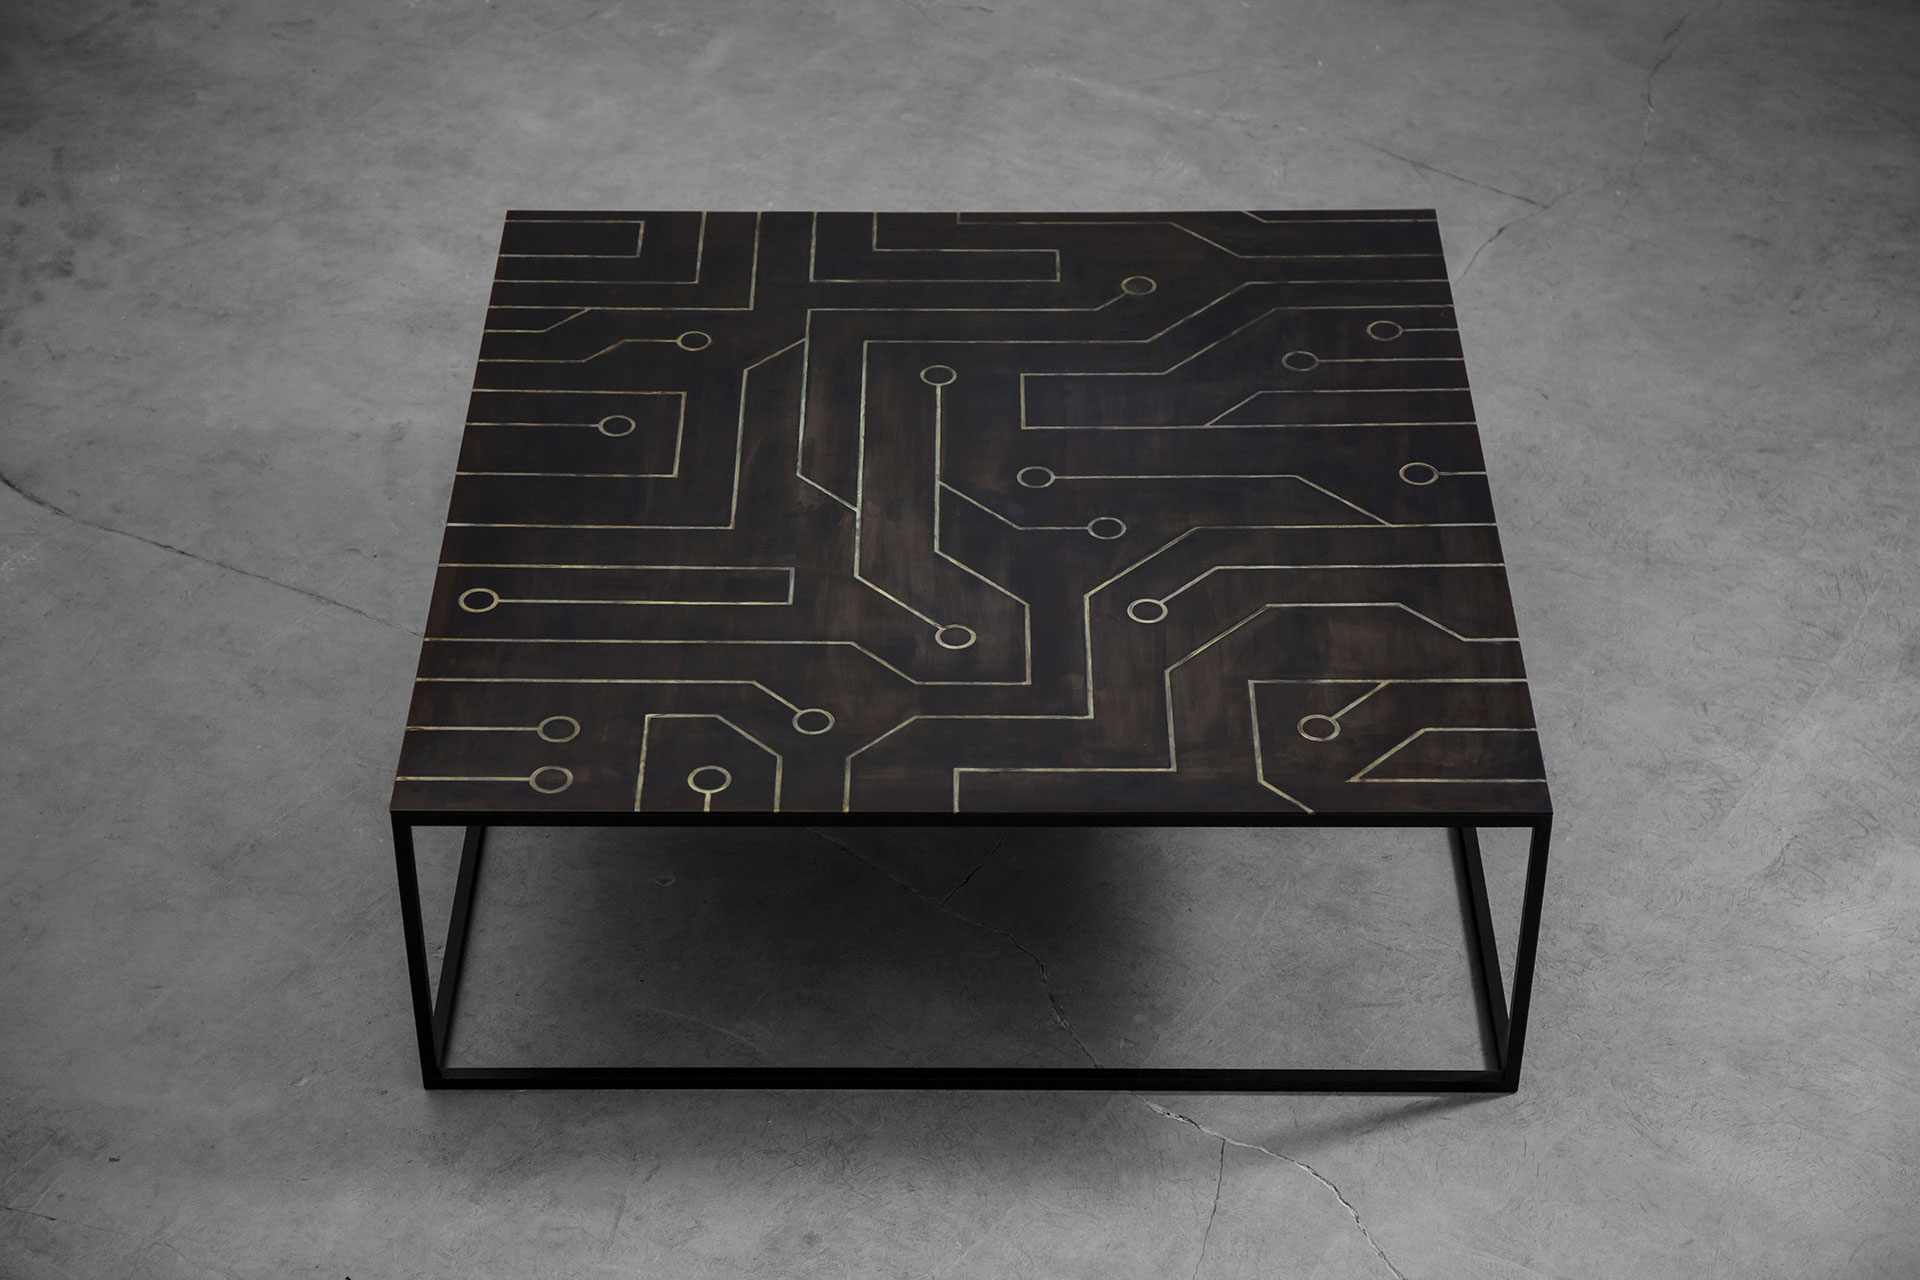 Black coffee table in modern men's apartment